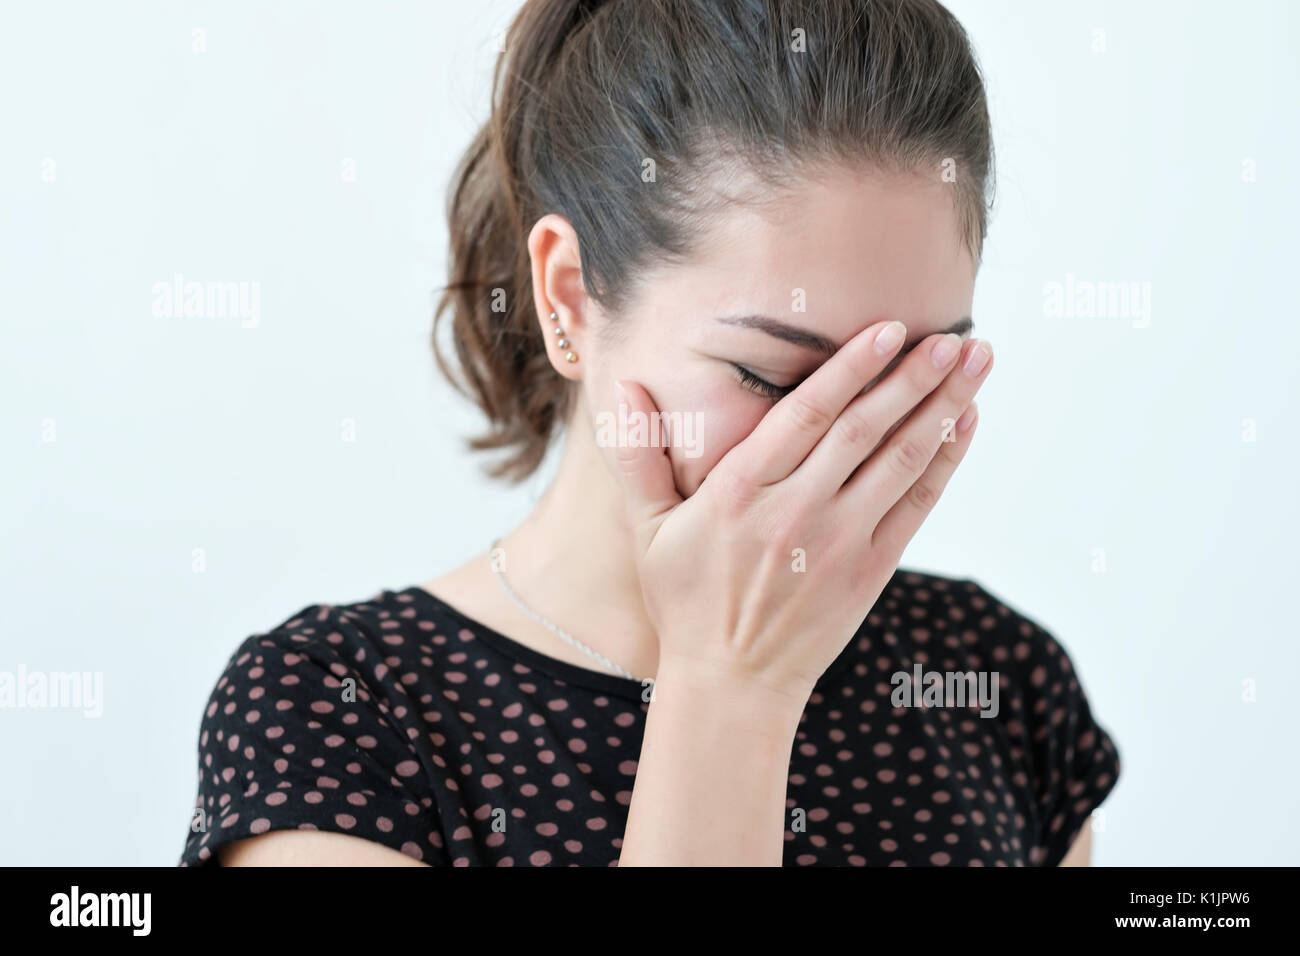 Playful shy woman hiding face with her hands - Stock Image